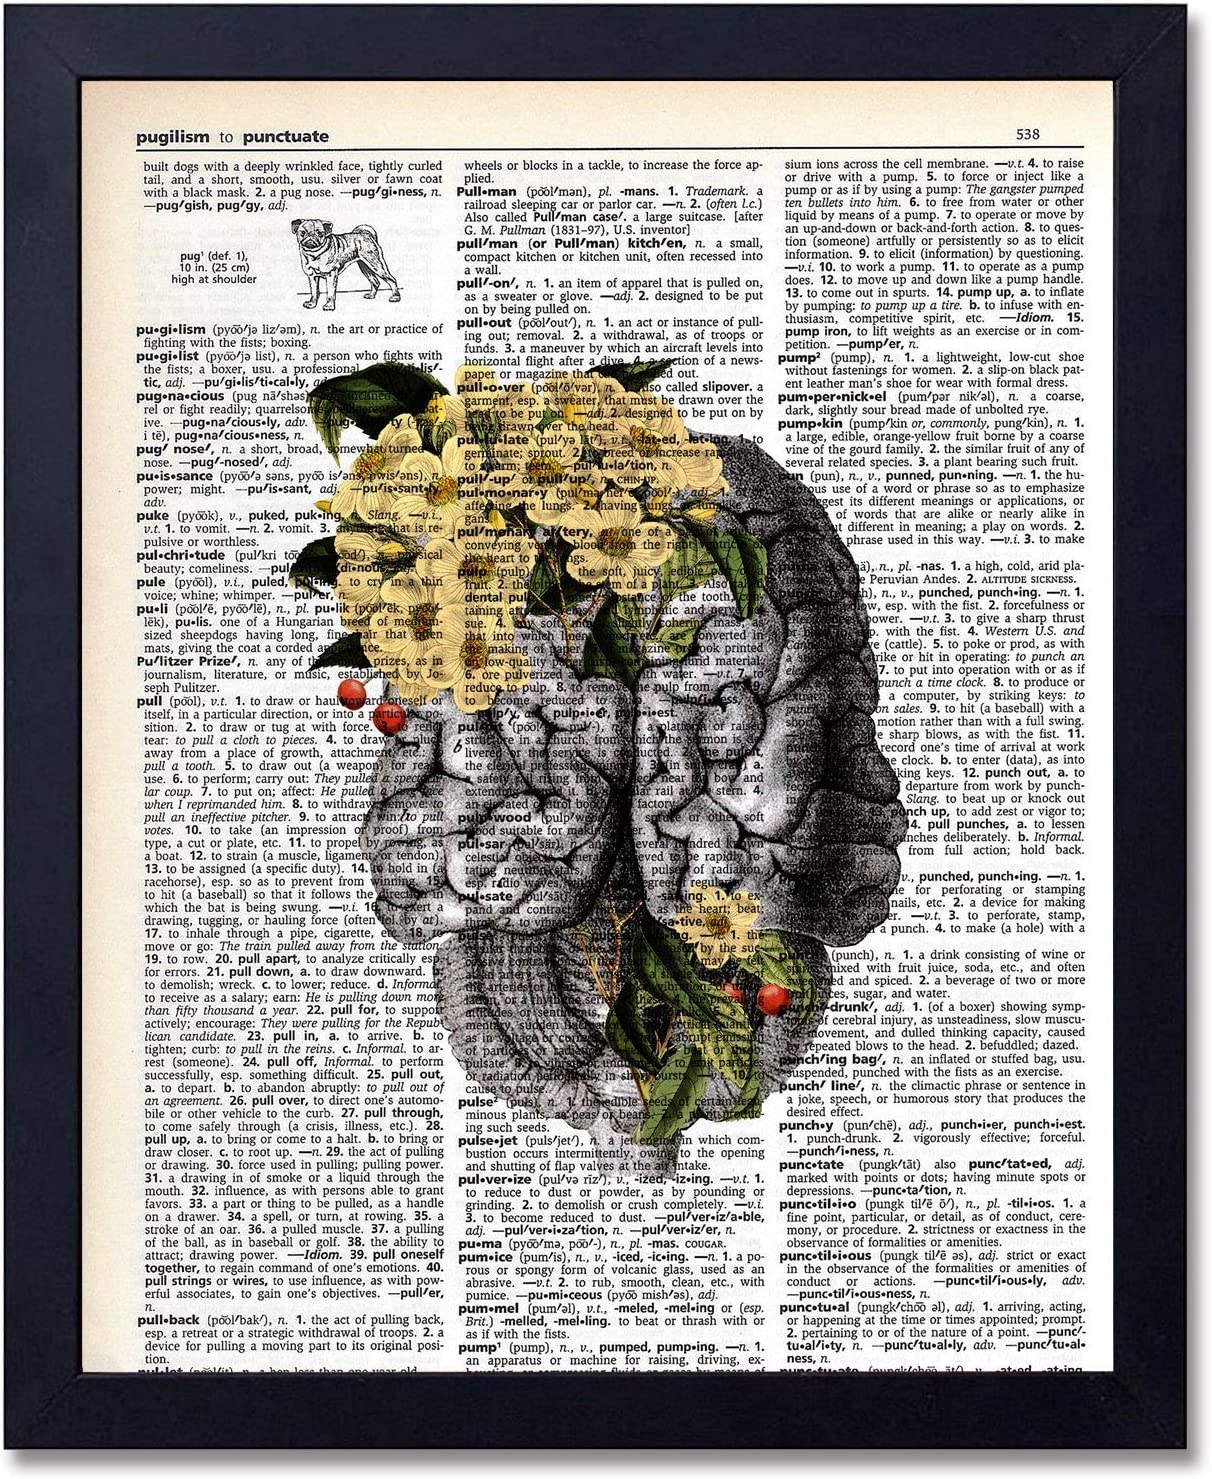 Organs & Flower Anatomy Brain Dictionary Art Prints, Steampunk Medical Wall Art Goth Room Decor Gift for Office, Doctor's Office, Gift, Physician, Nurse, Unframed 8x10 inches